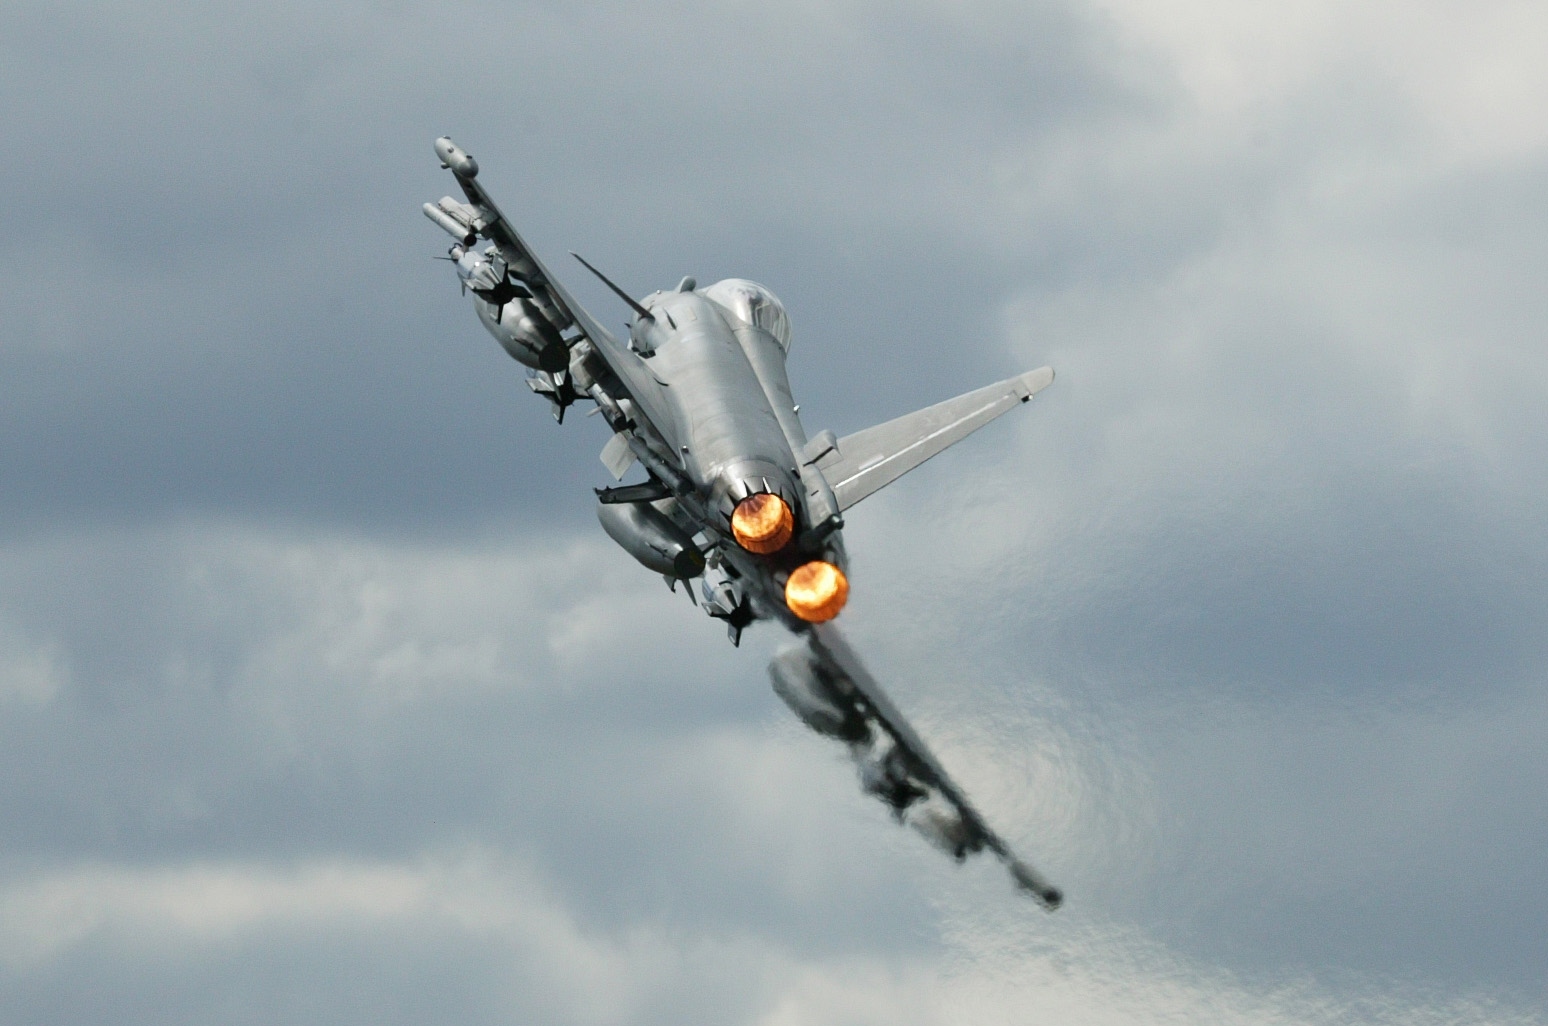 File:Eurofighter typhoon 2 jpg - Wikipedia